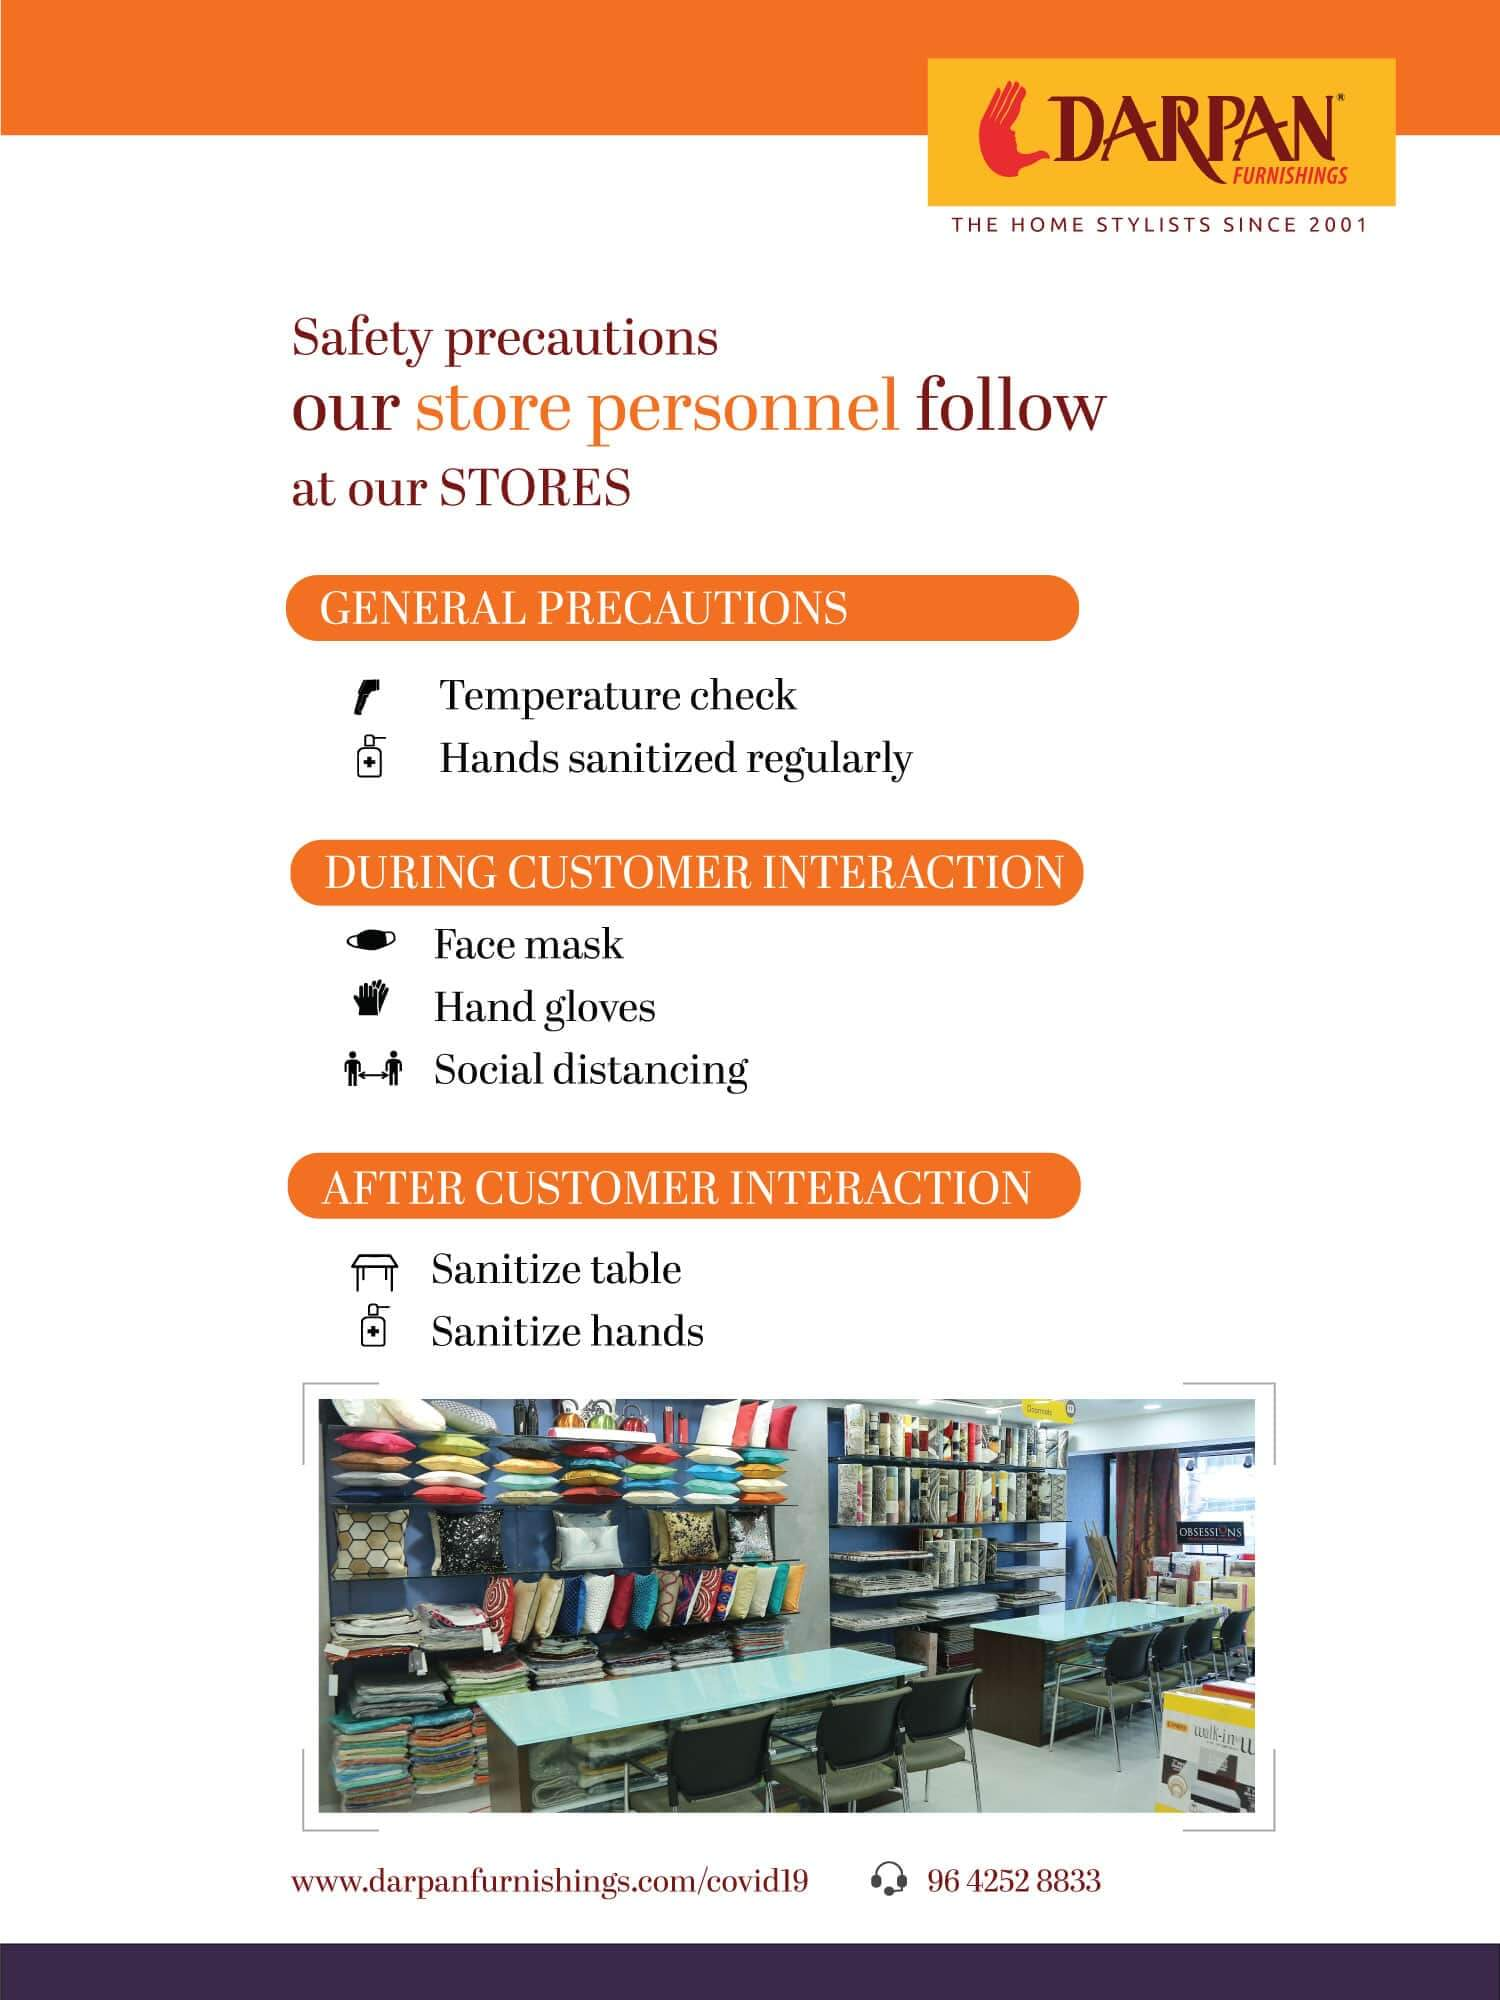 Darpan  Safety precautions by store personell at Store min 1